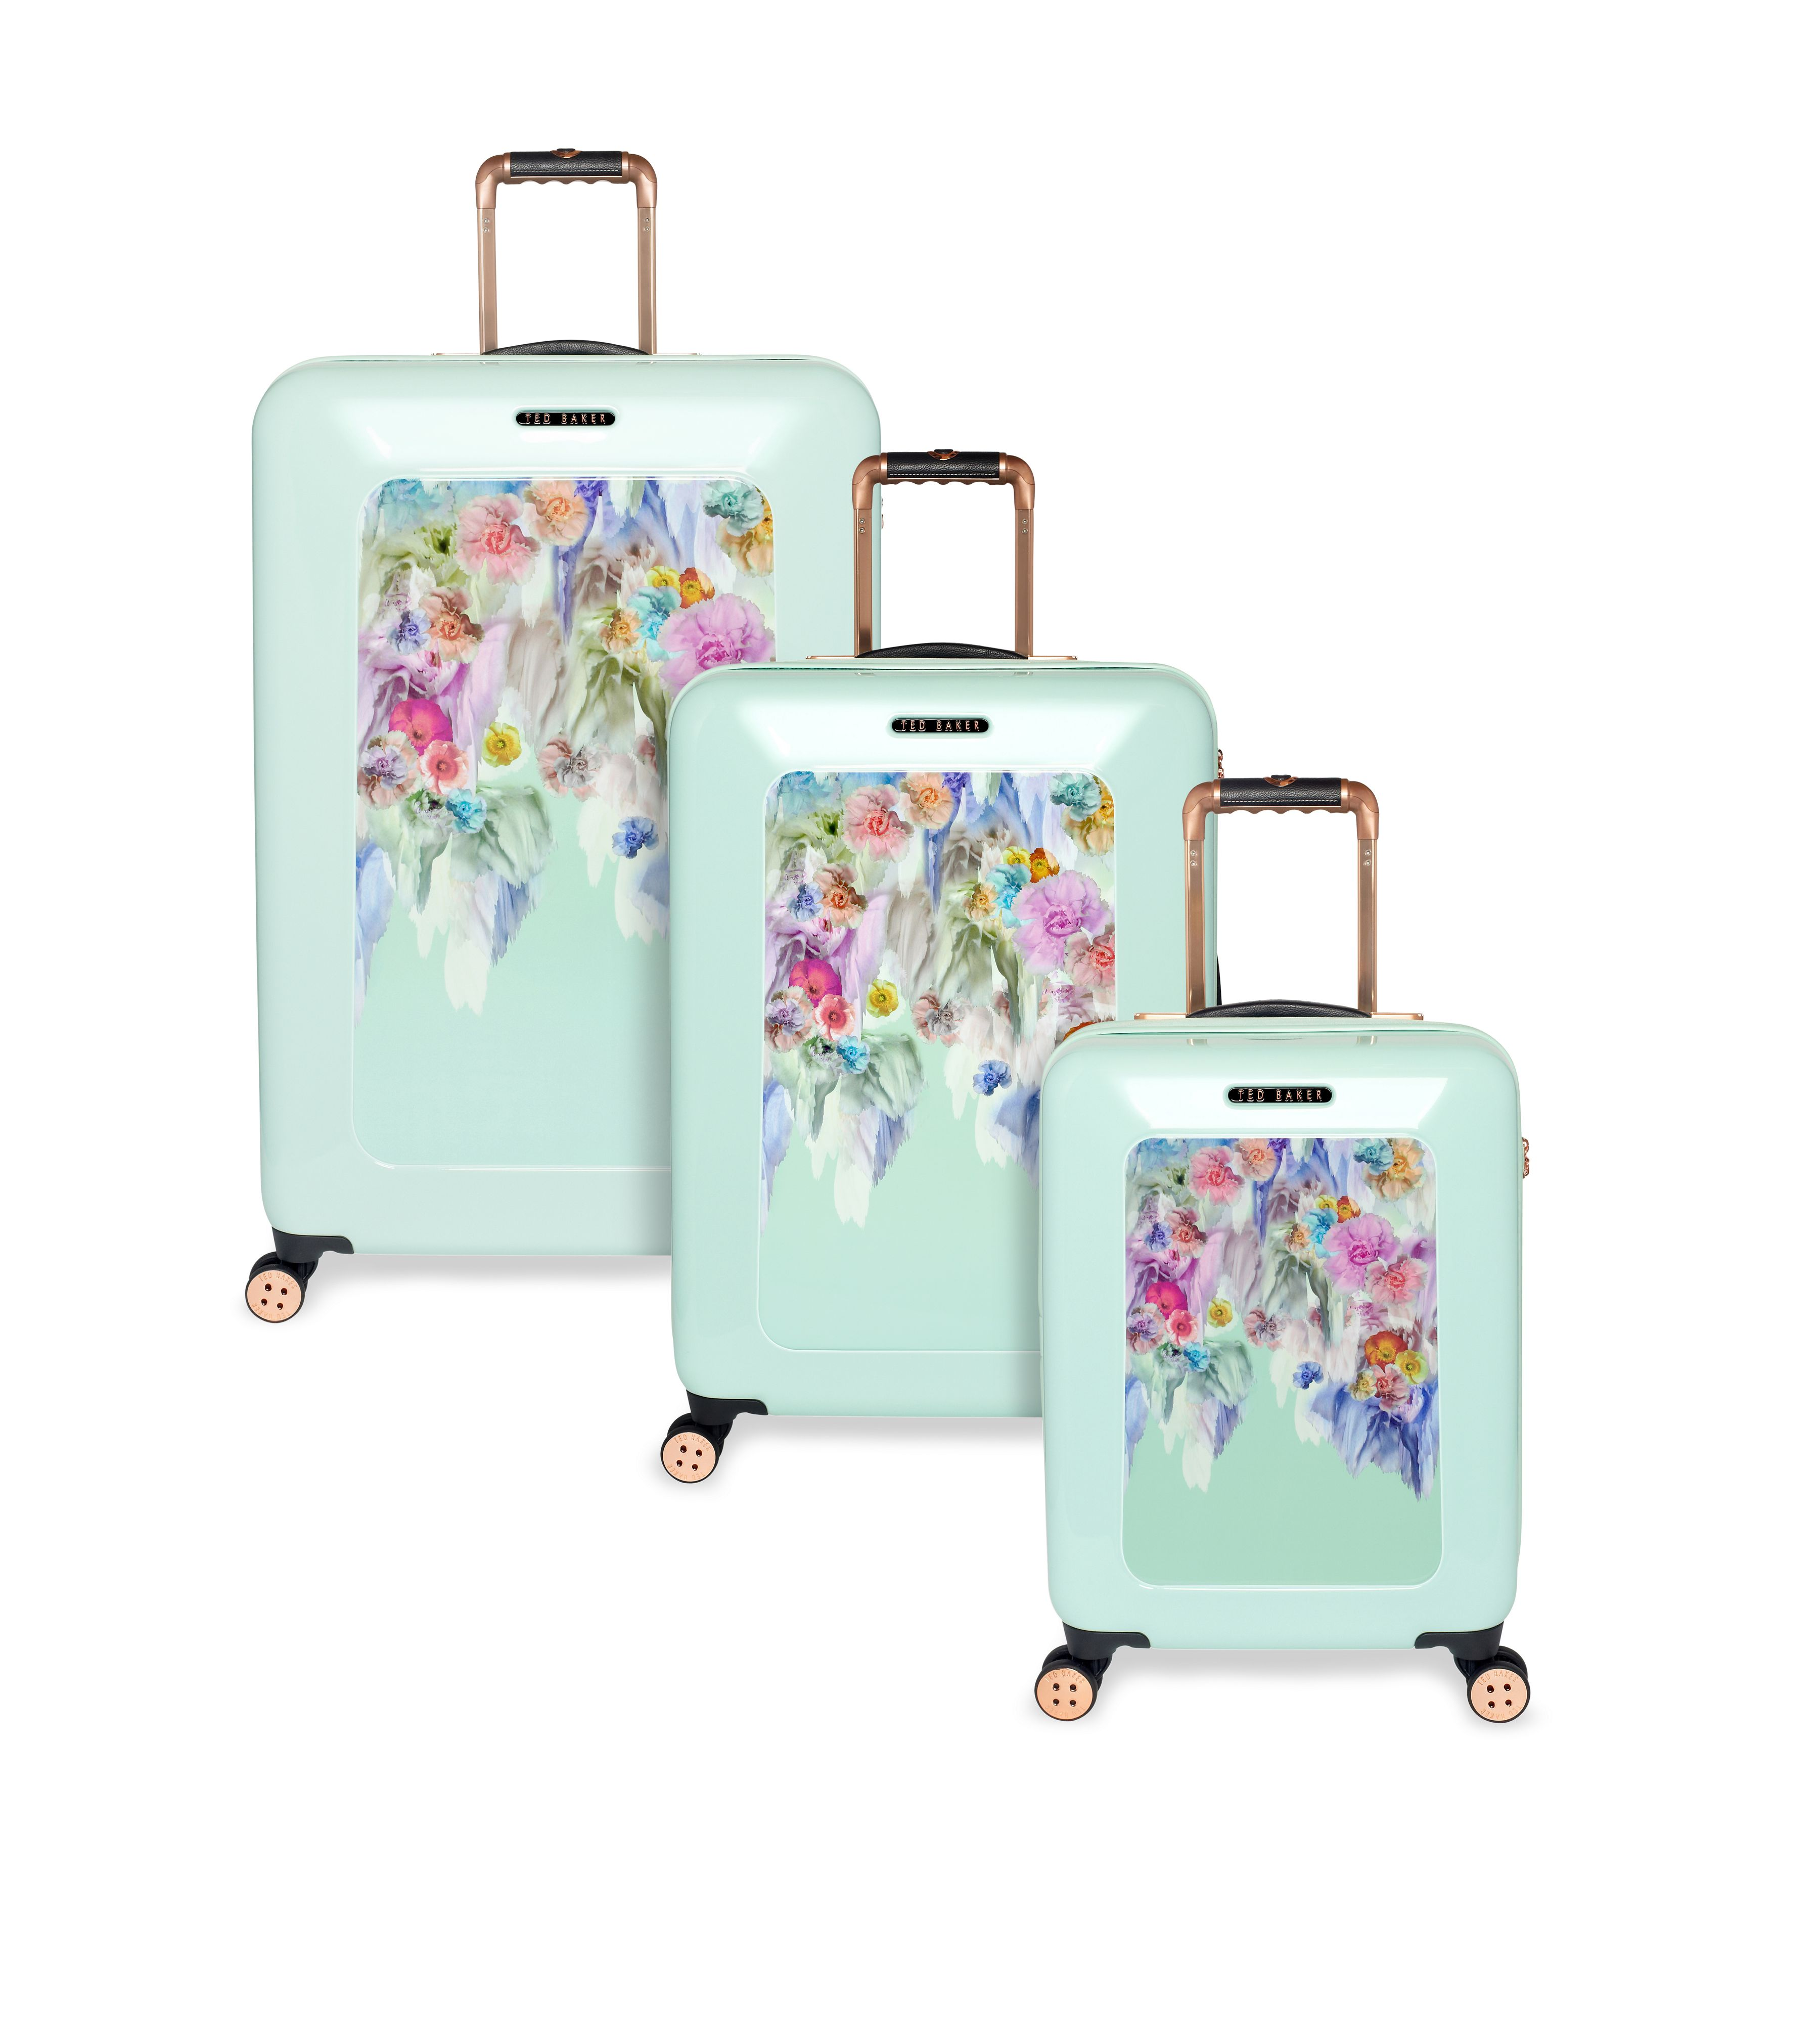 Sugar floral luggage range